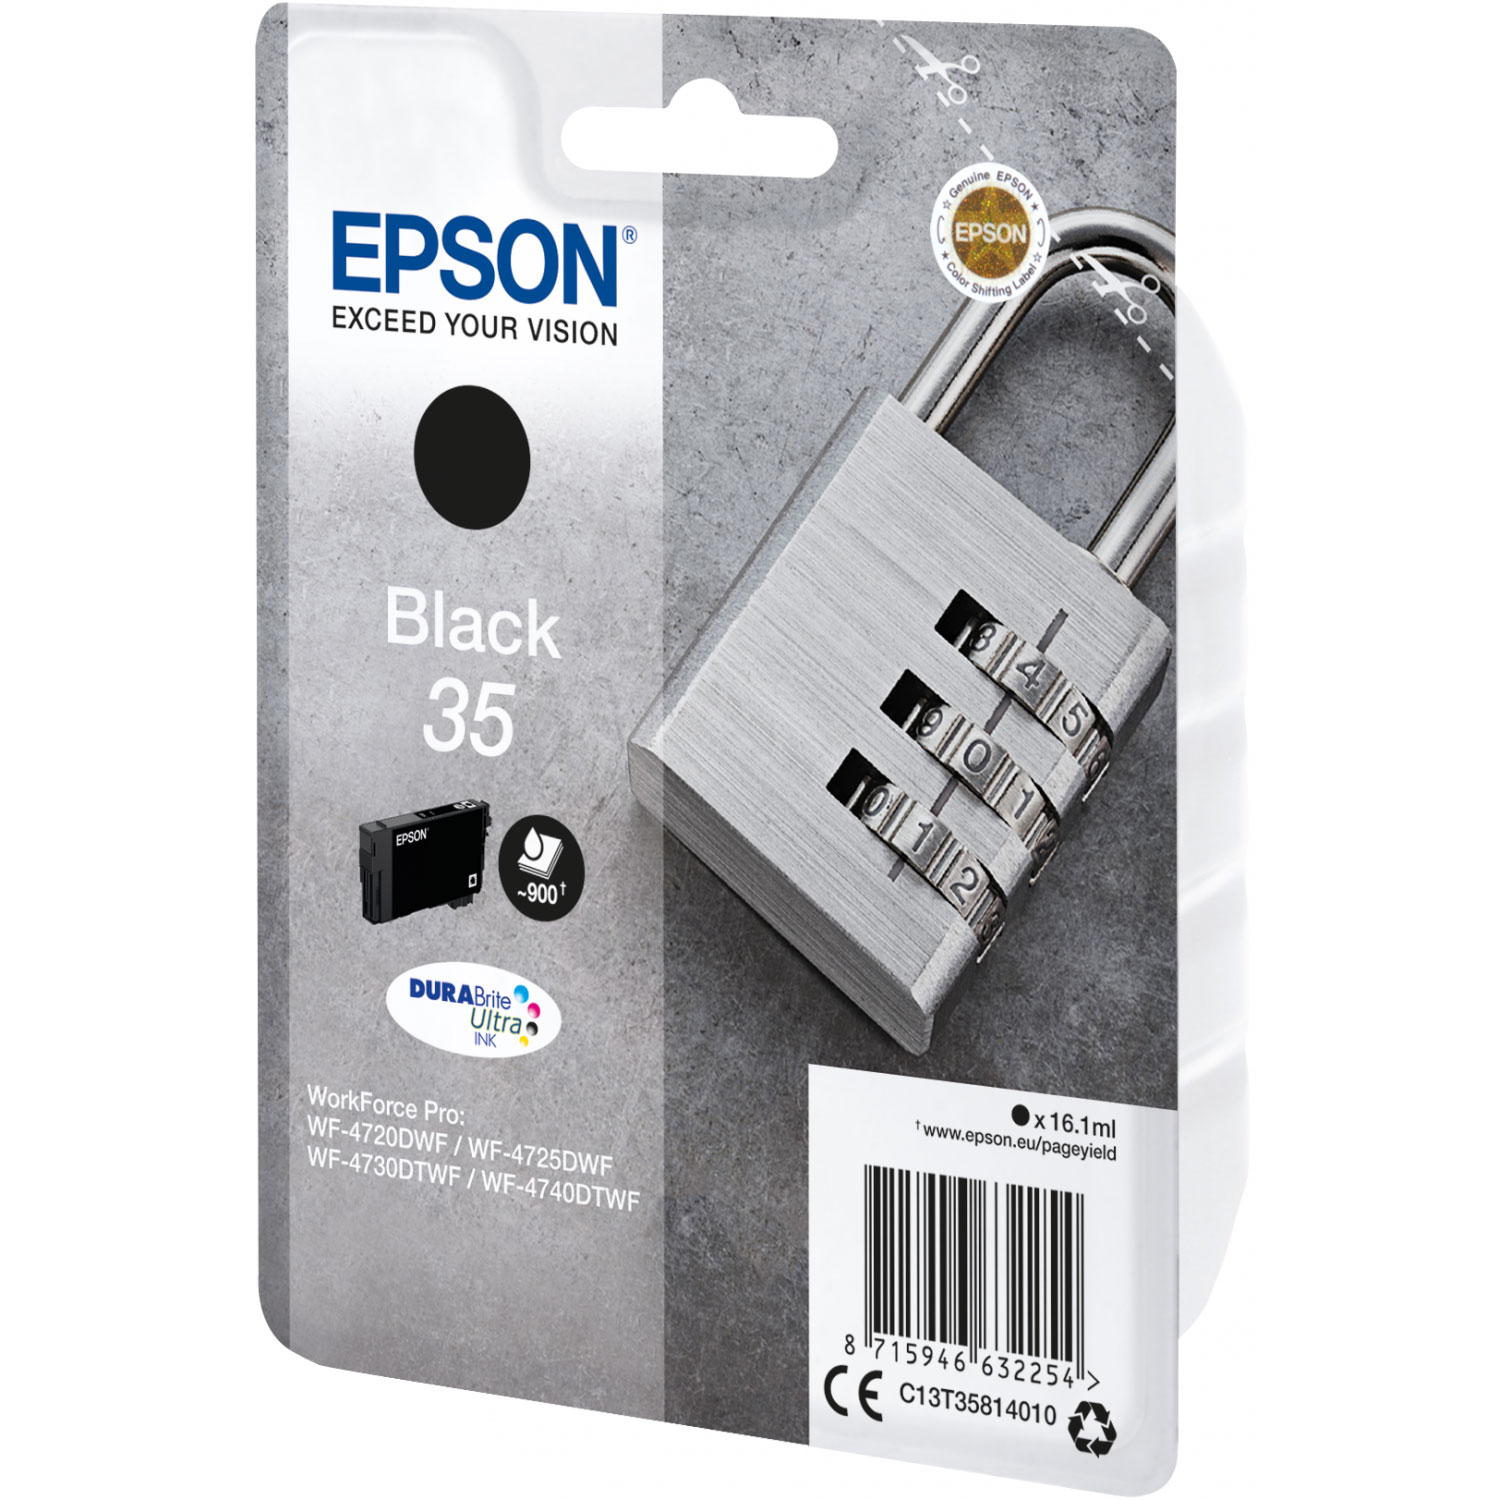 epson cadenas noir 35 cartouche imprimante epson sur. Black Bedroom Furniture Sets. Home Design Ideas